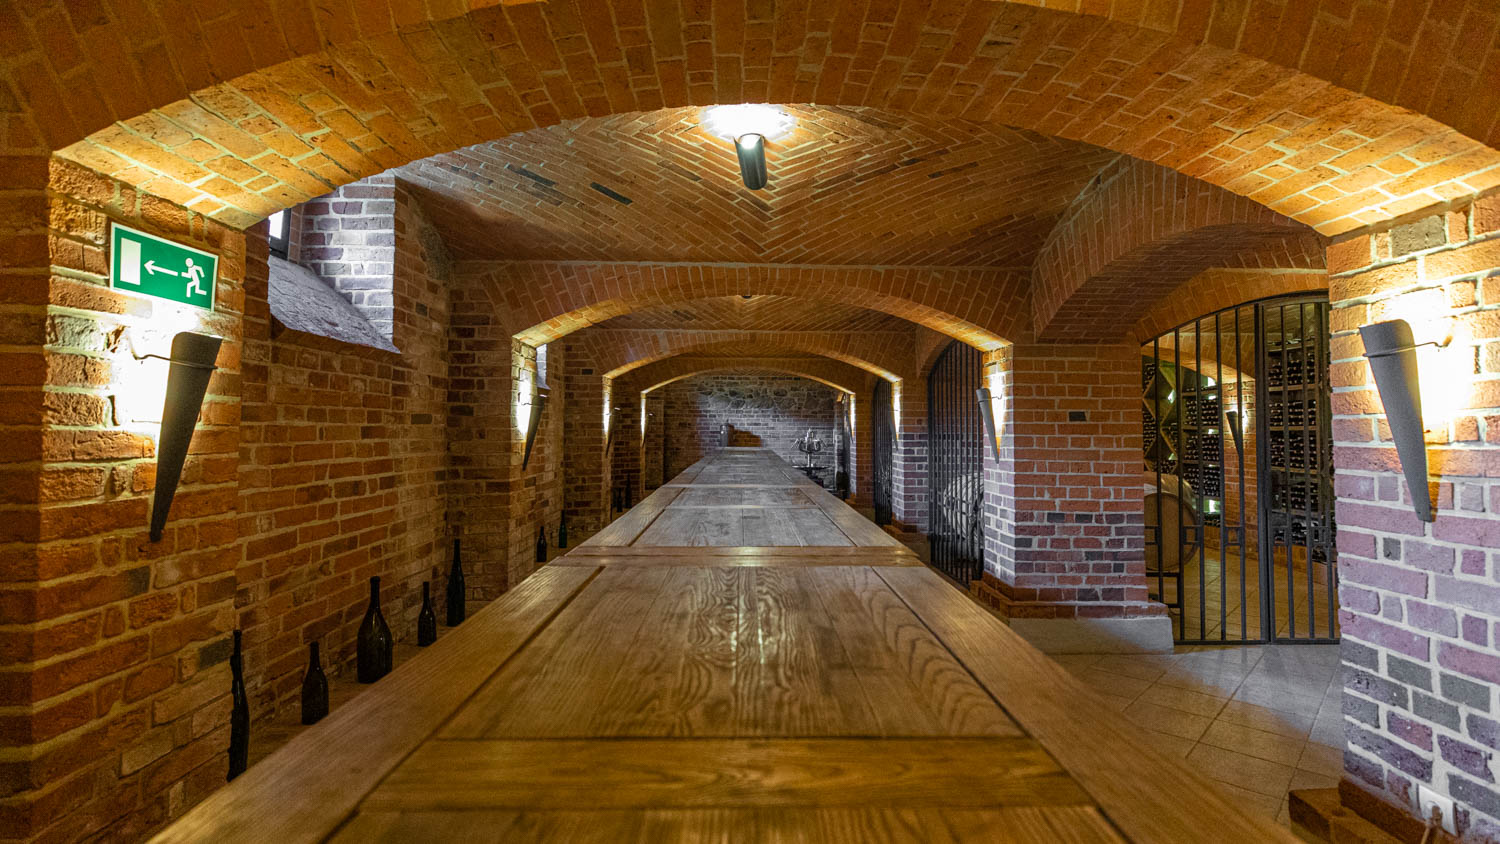 Wine cellar at the Wine spa in Poland Palac Mierzecin